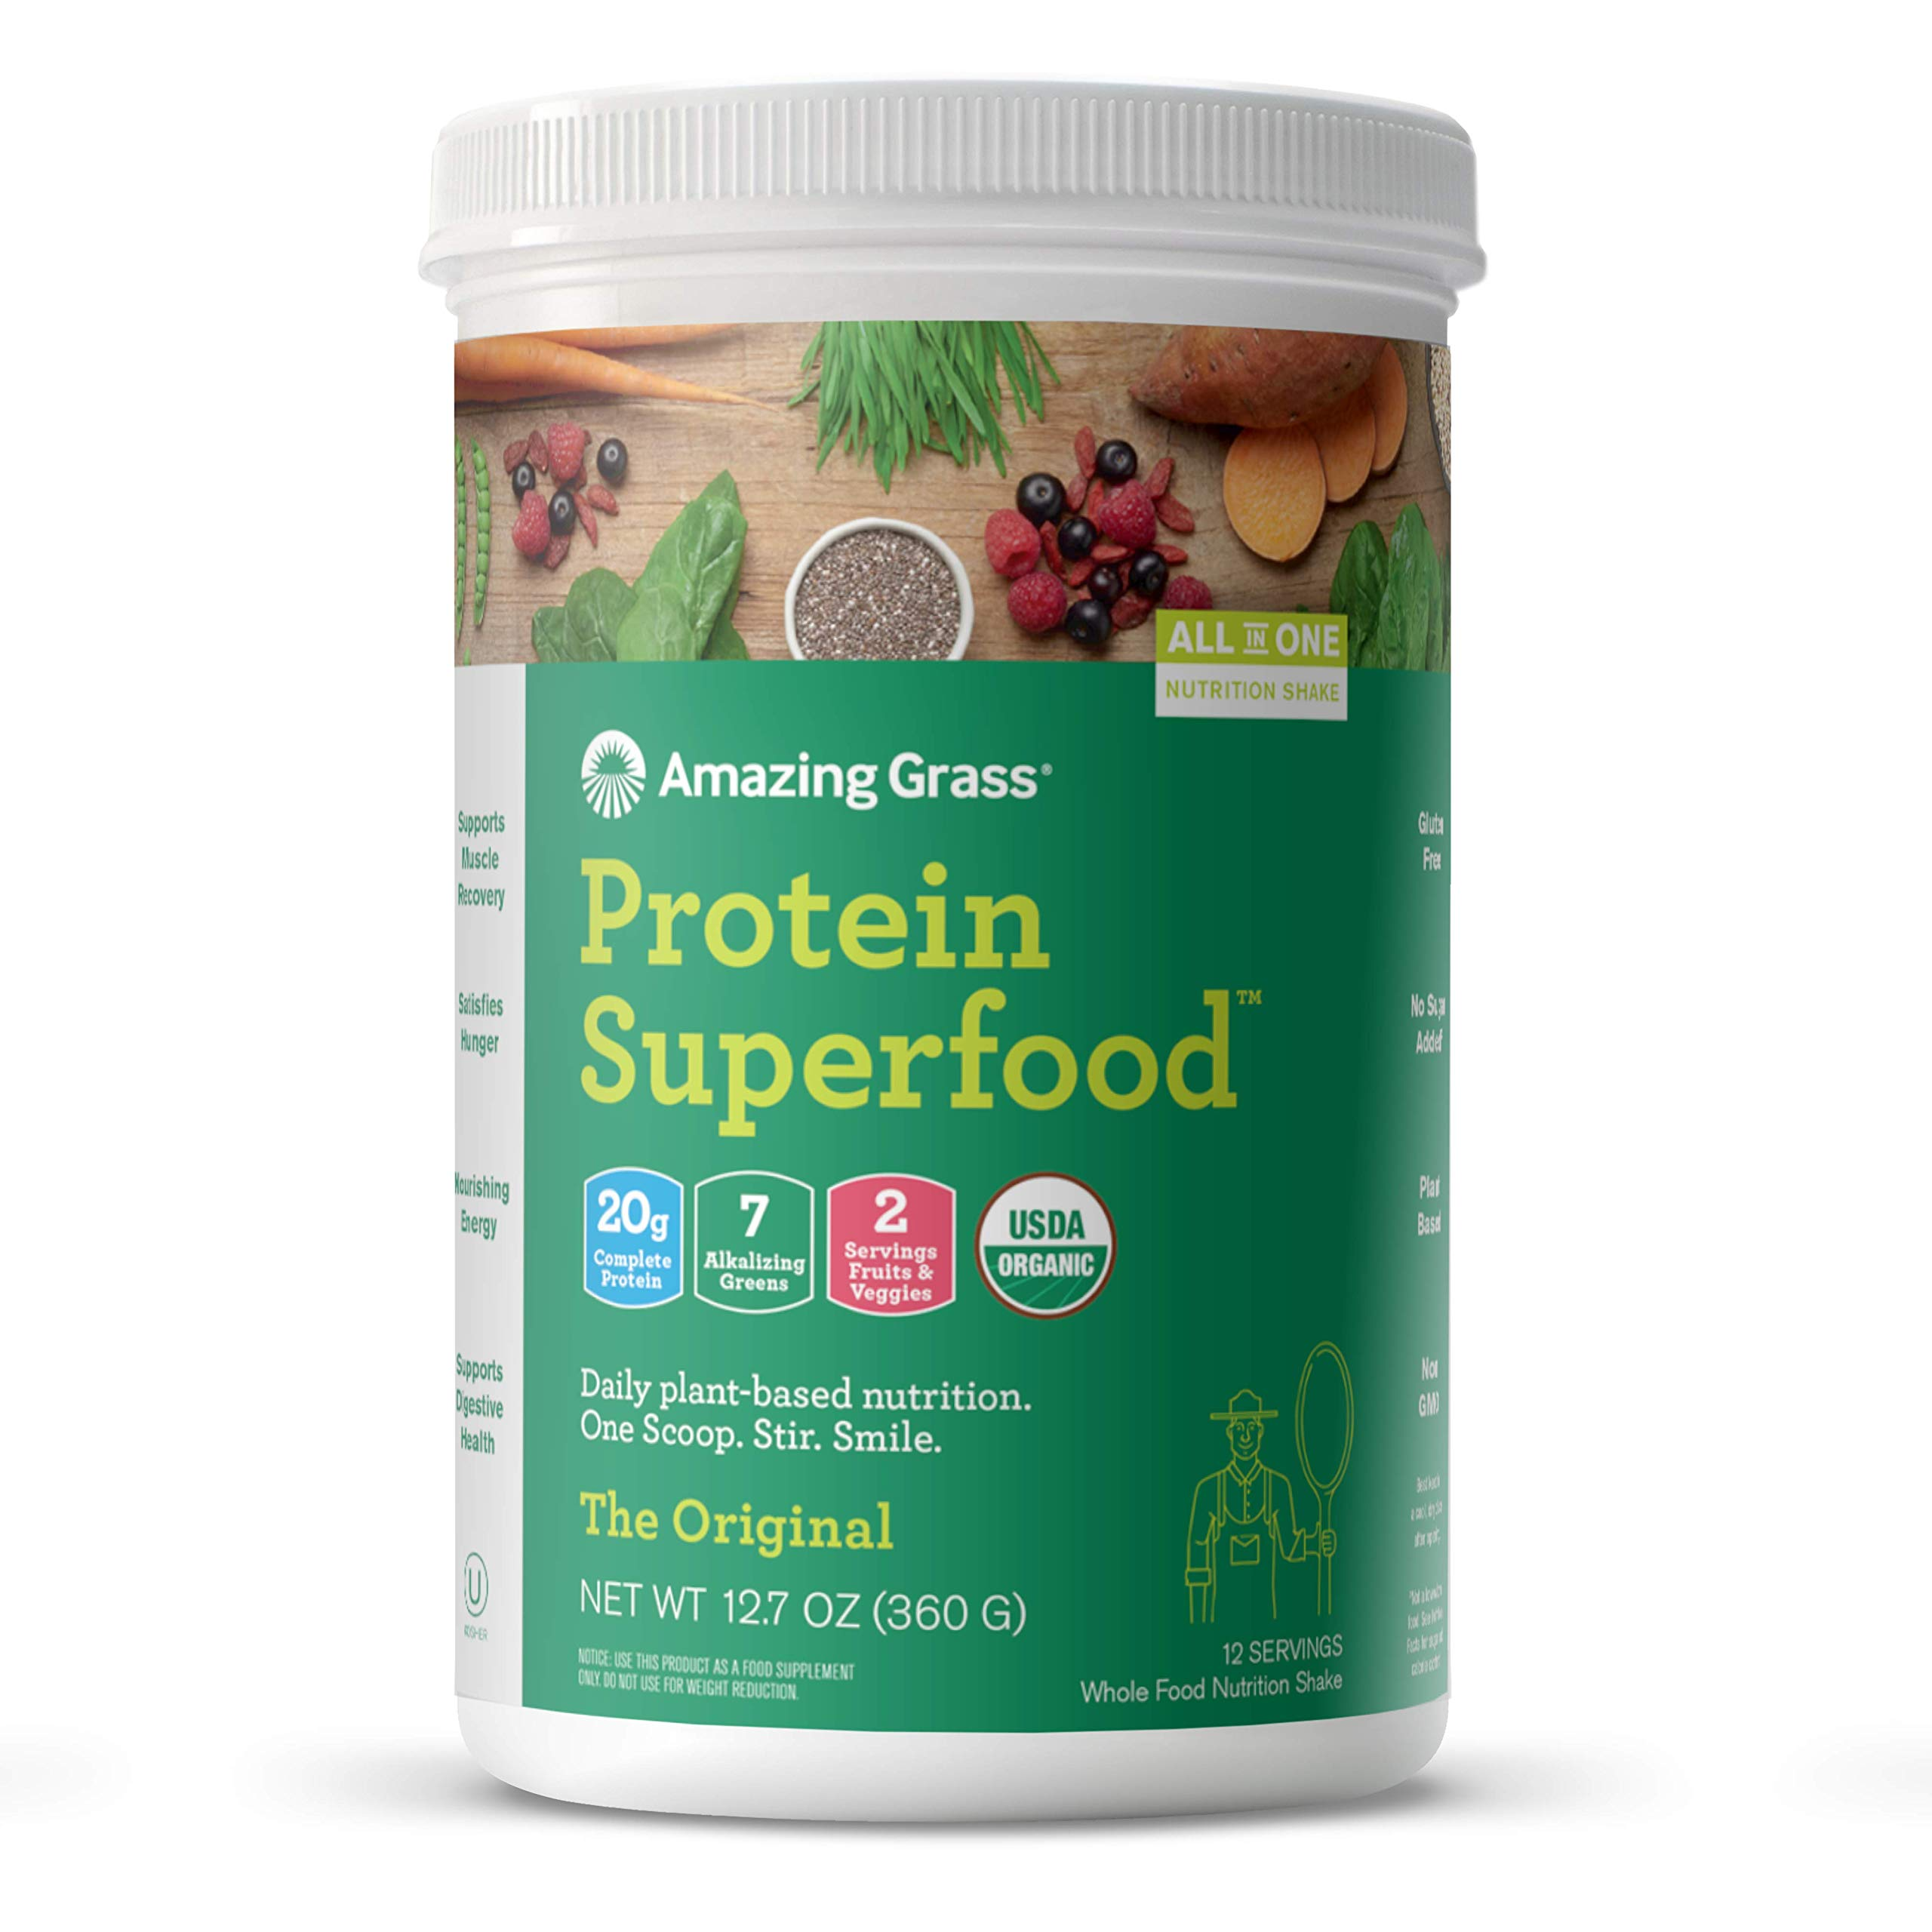 Amazing Grass Protein Superfood: Vegan Protein Powder, All in One Nutrition Shake, Unflavored, 12 Servings